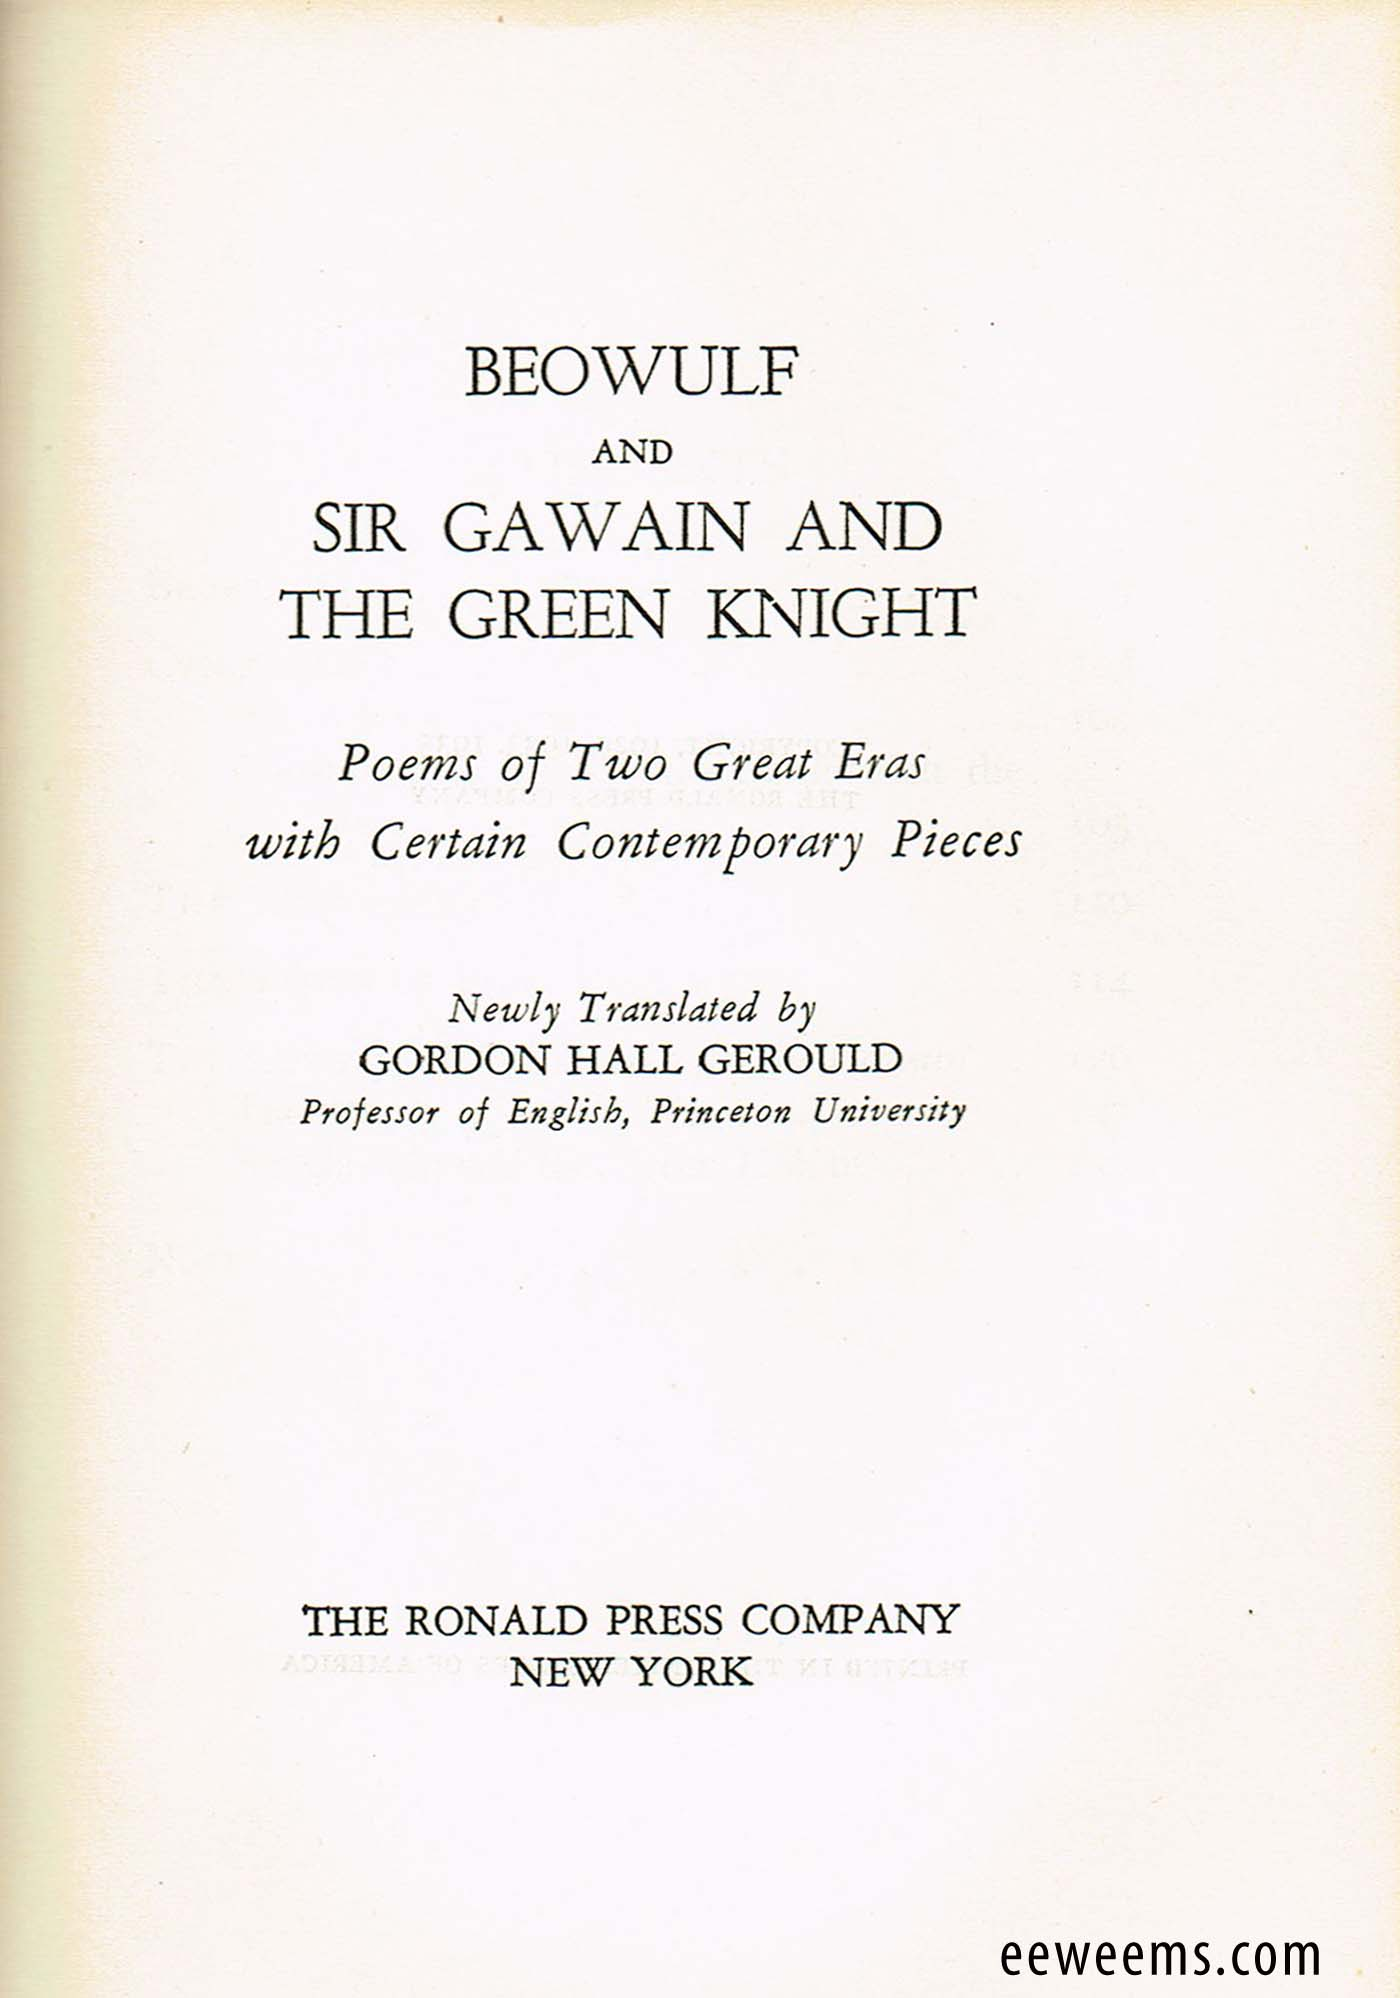 King Arthur and Beowulf Comparison